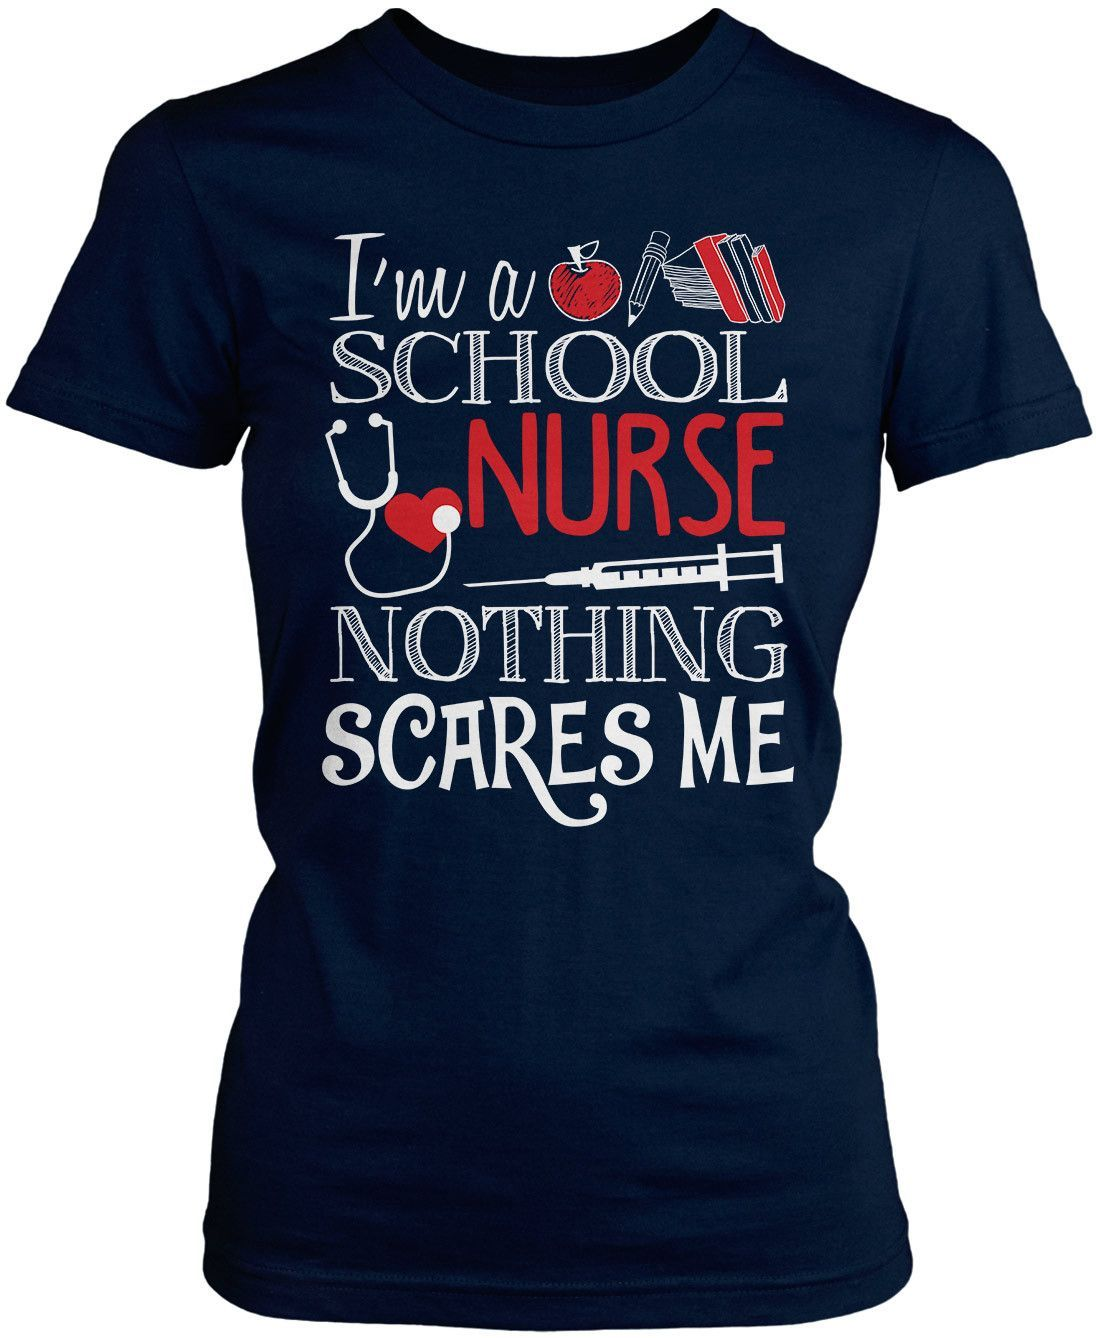 3c3b336a97b I'm a school nurse nothing scares me! The perfect T-Shirt for any School  Nurse. Order yours today! Premium, Women's Fit & Long Sleeve T-Shirts Made  from ...